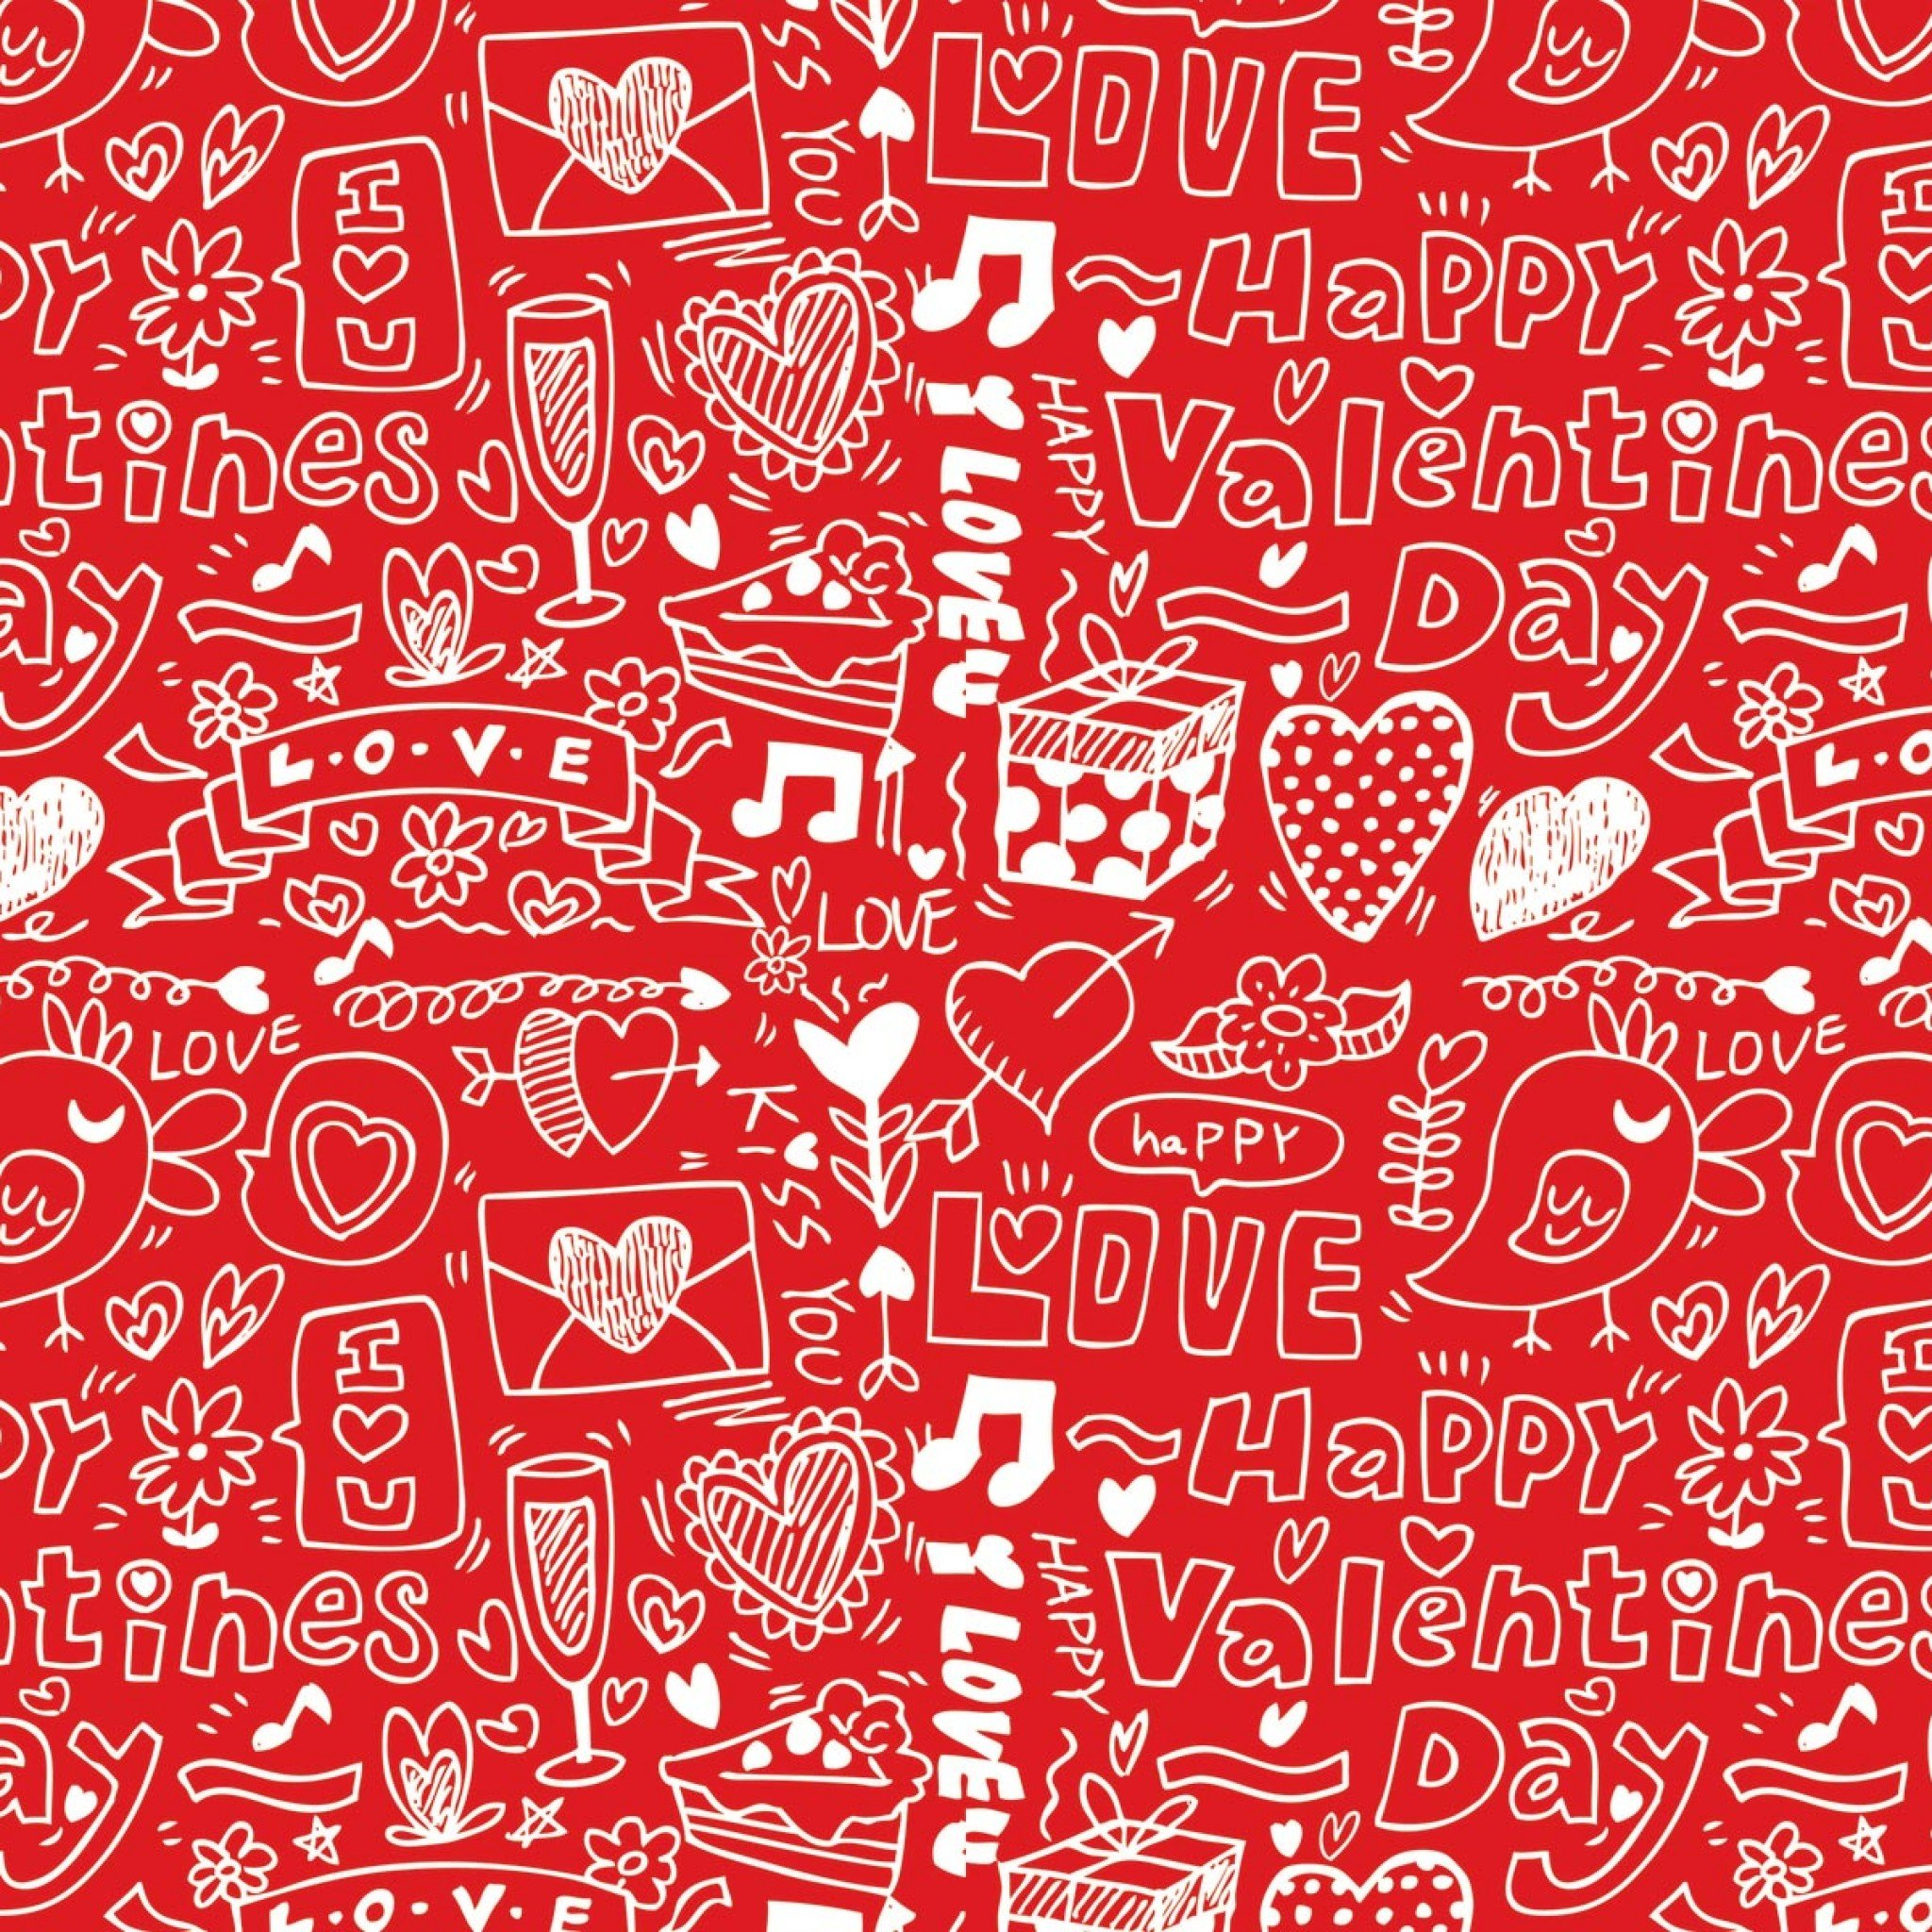 valentines day background wallpaper